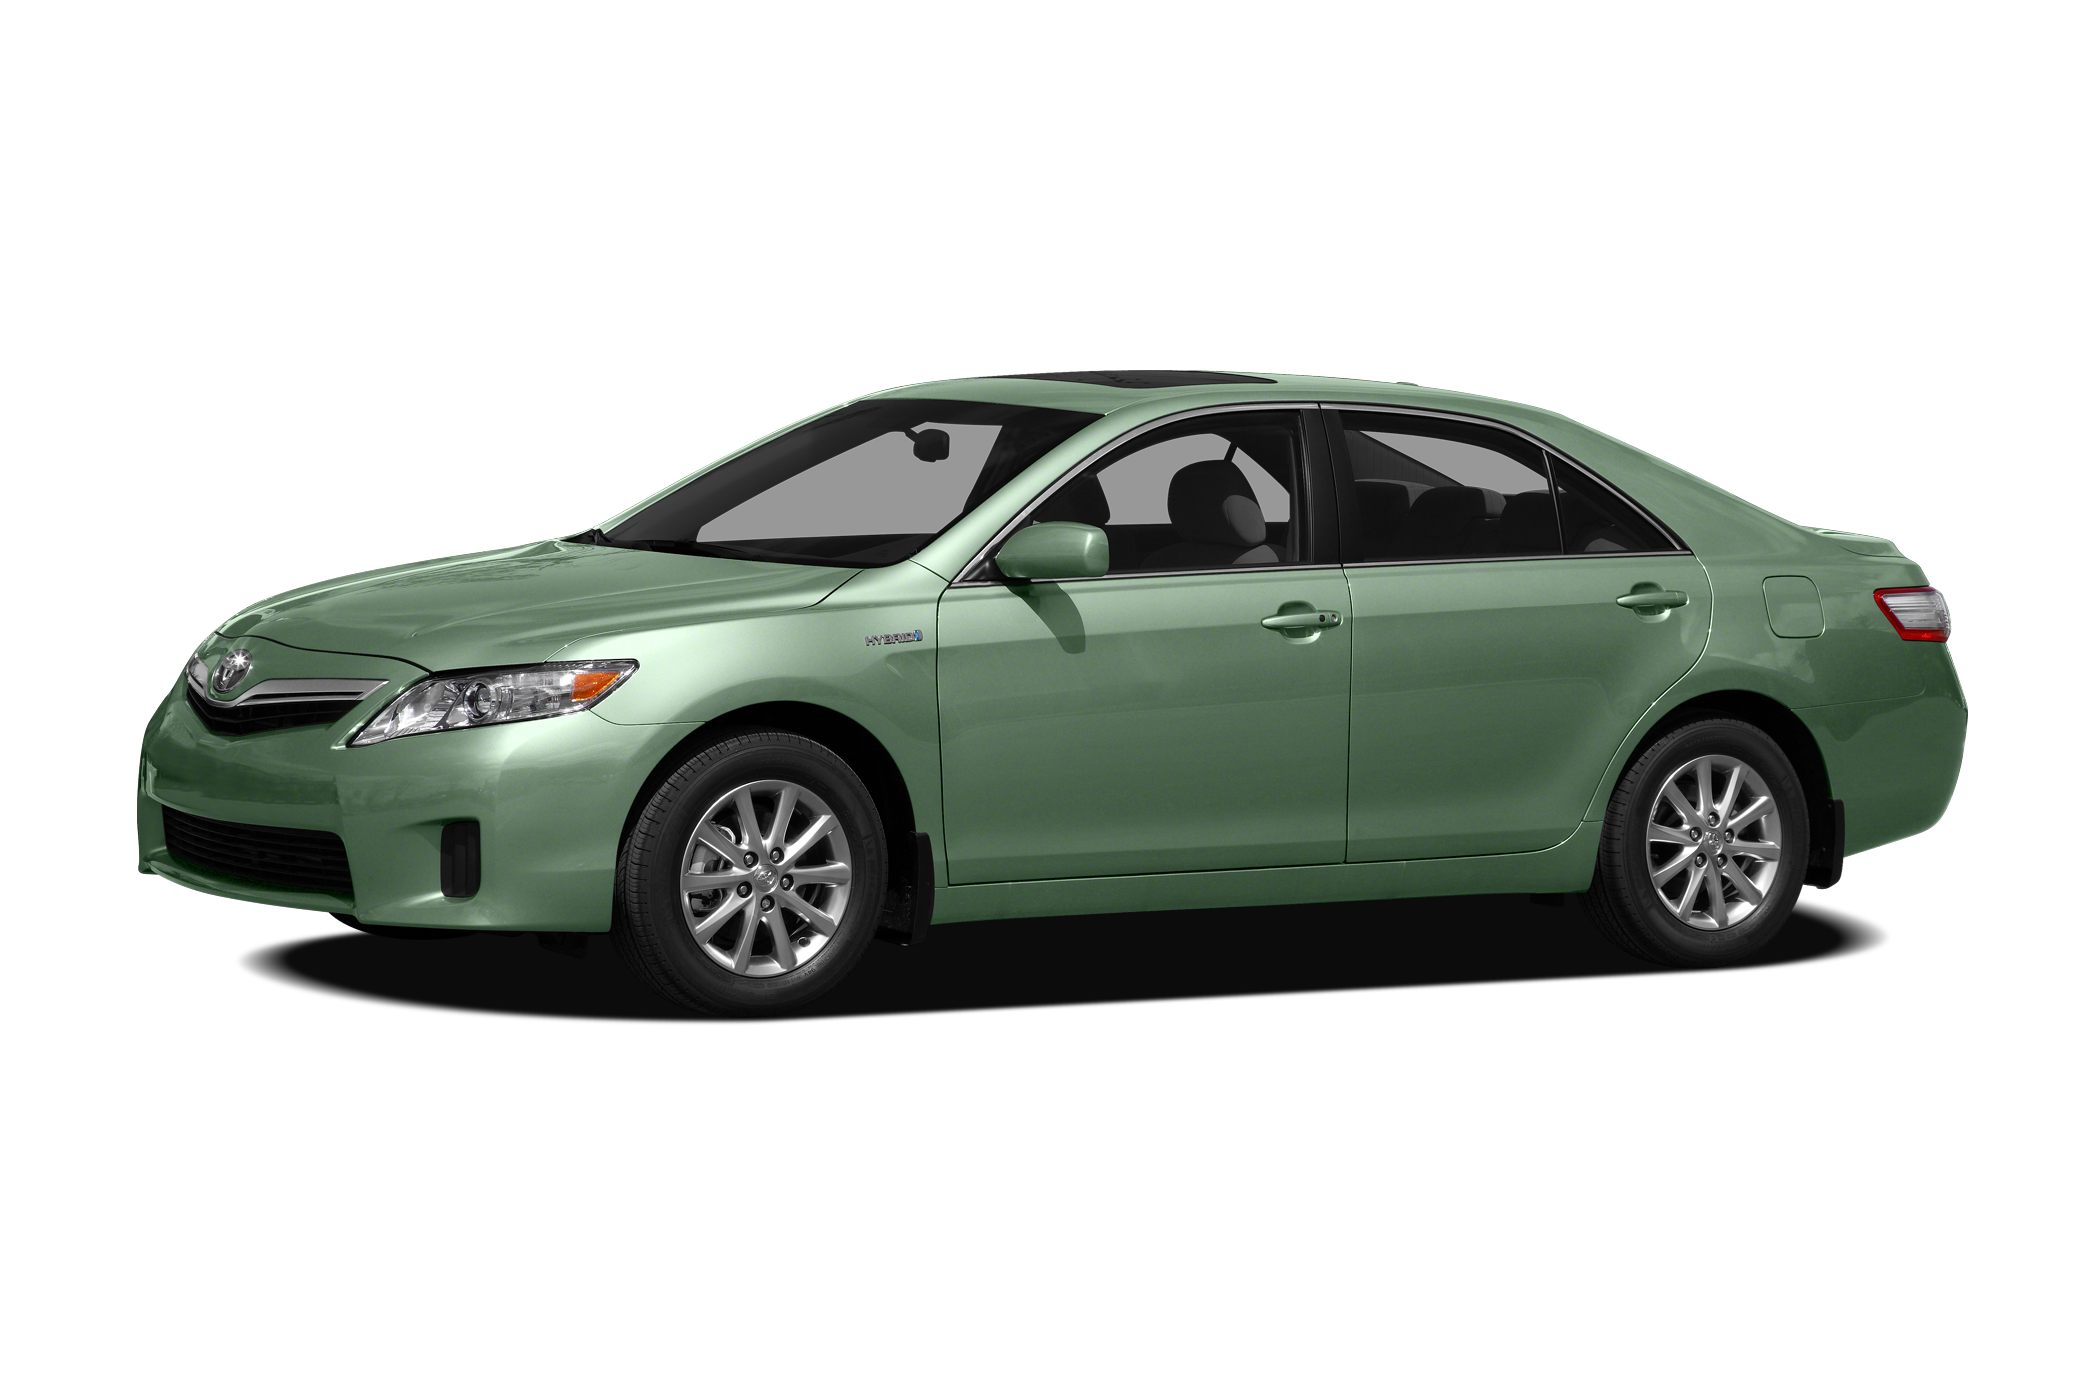 2010 Camry Hybrid Owner Reviews 2